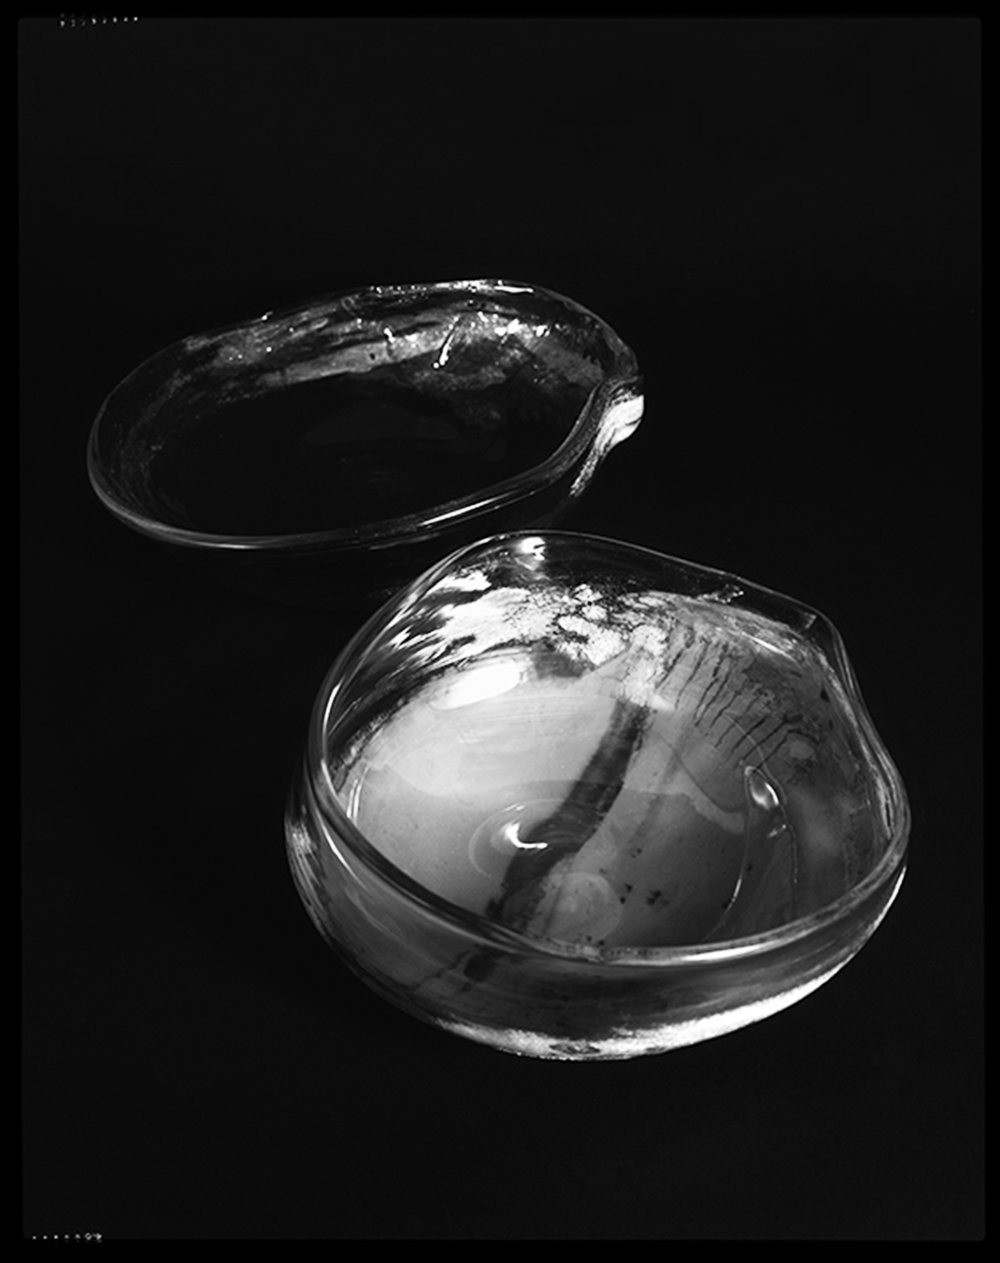 NEGATIVE AMBROTYPE - CLEAR/IVORY HANDBLOWN GLASS